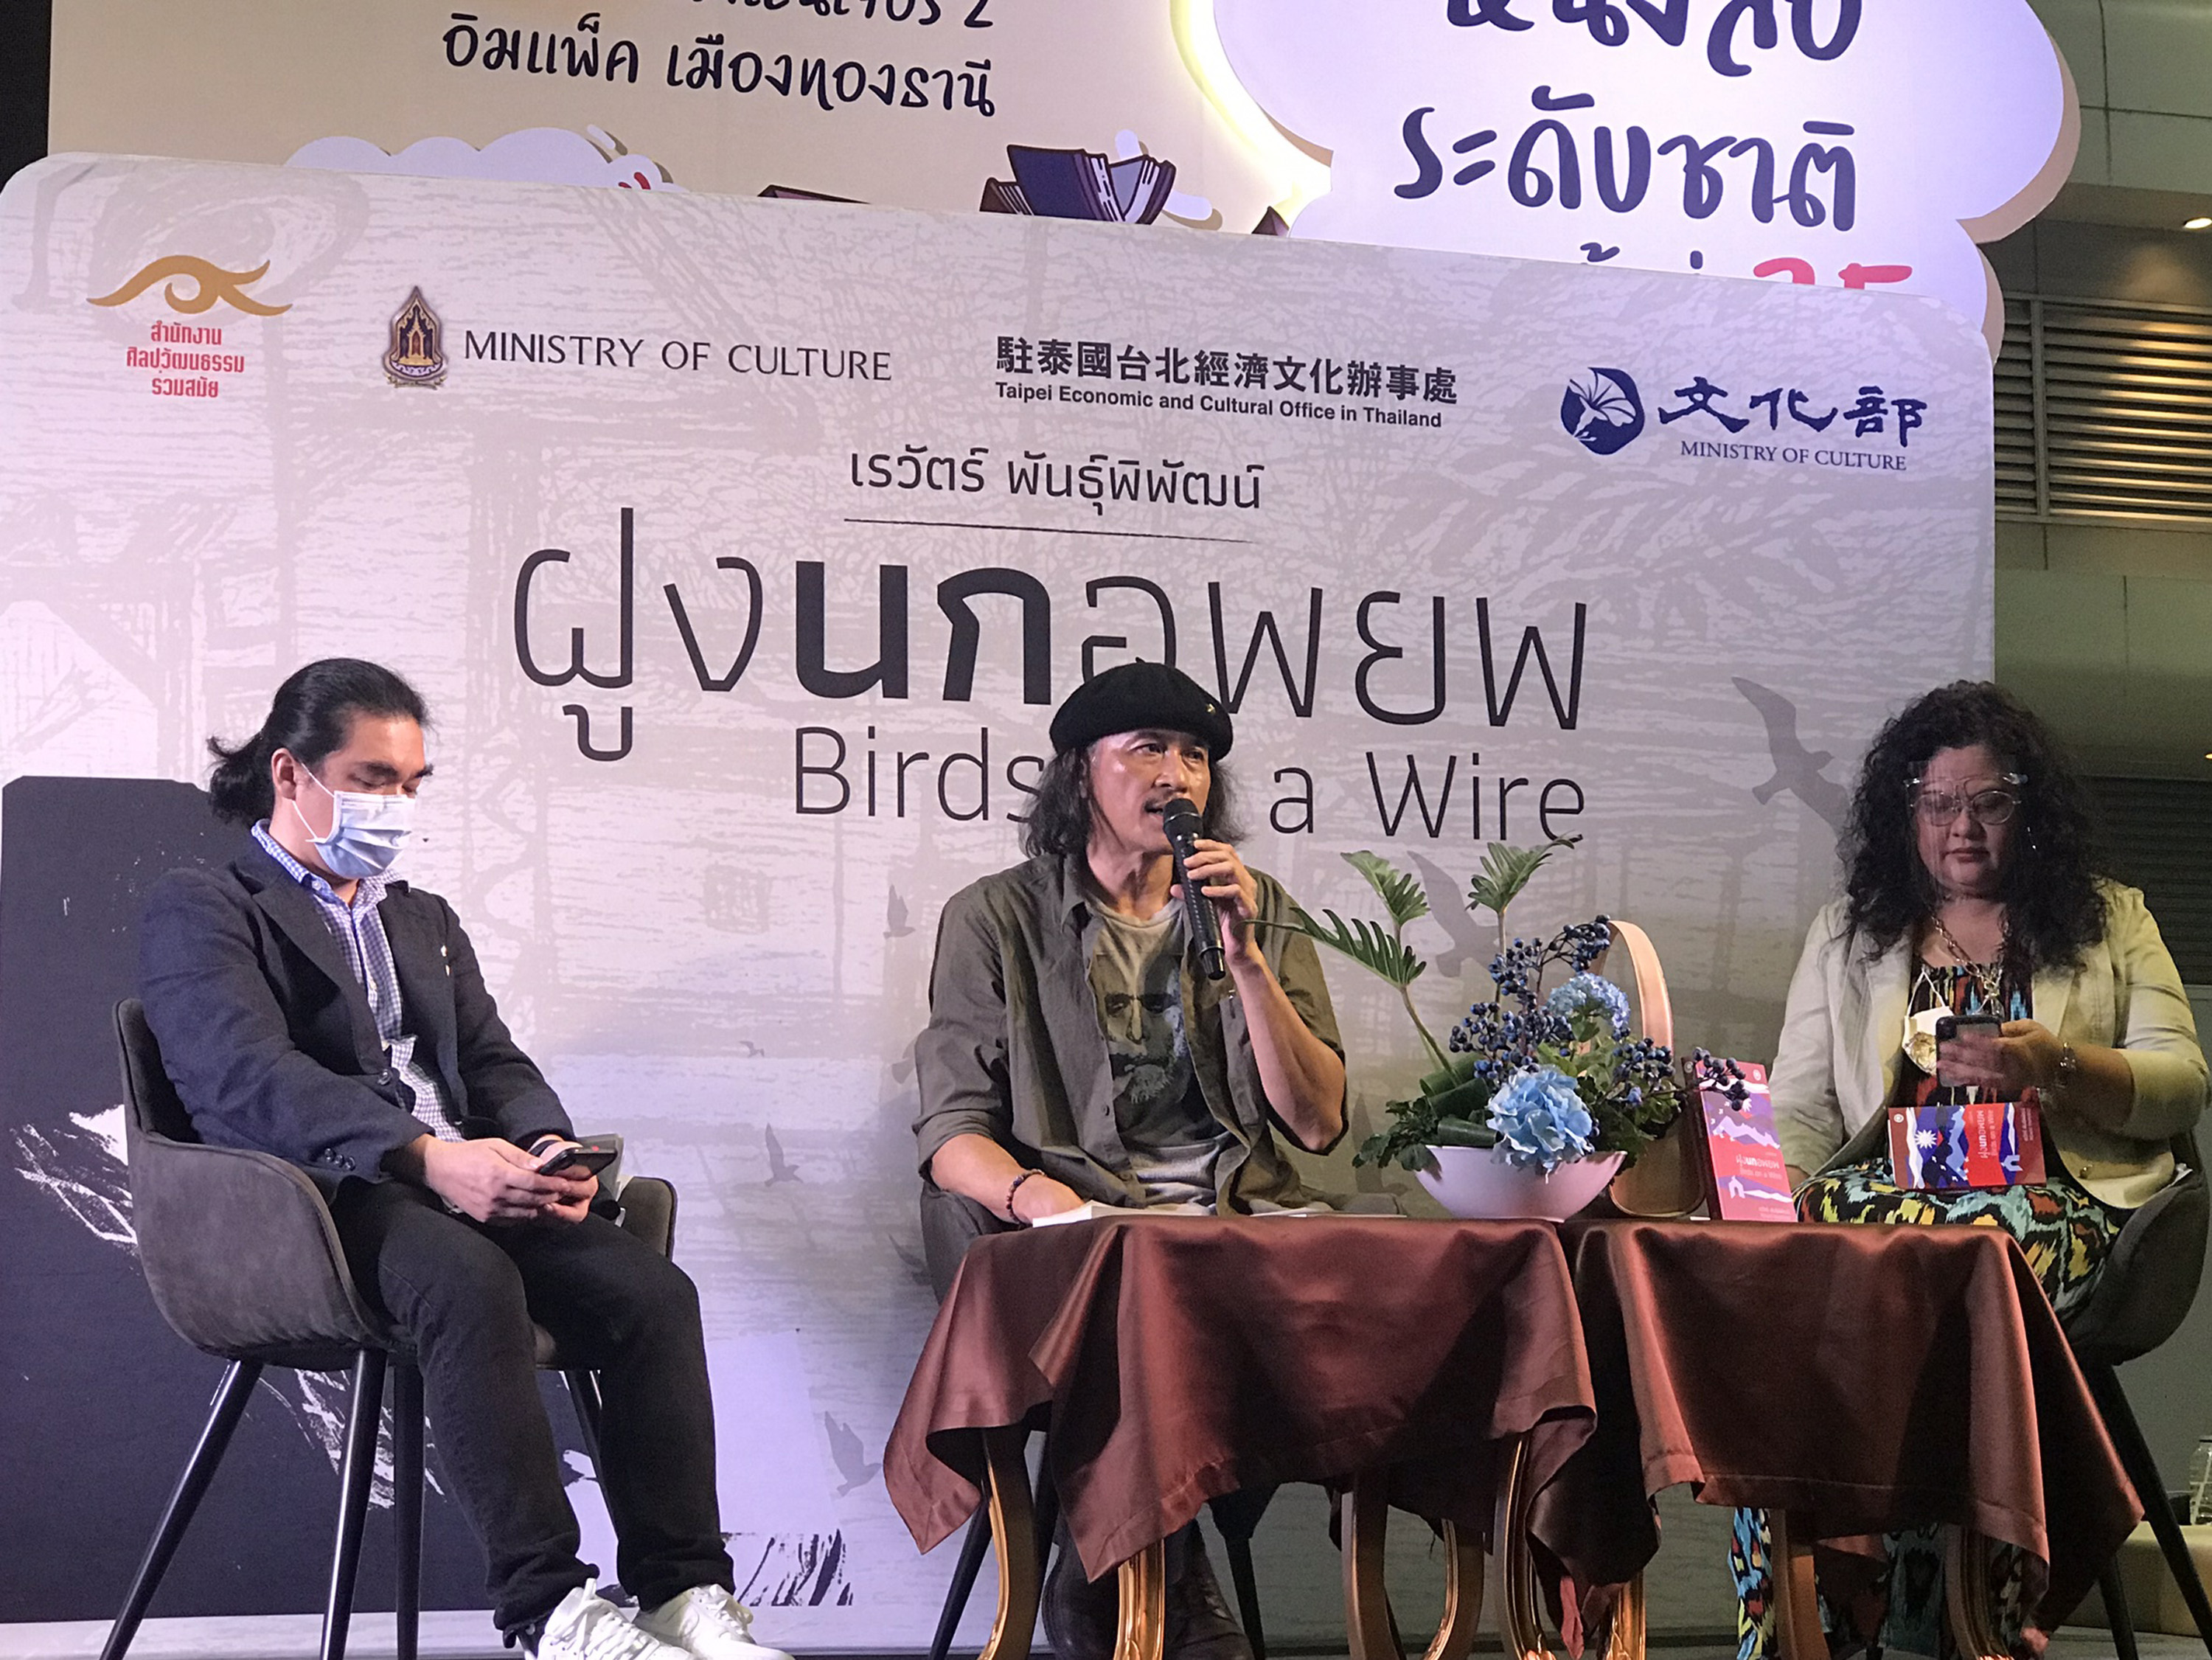 Thai novelist holds book-signing event for new book inspired by lives of migrant workers in Taiwan